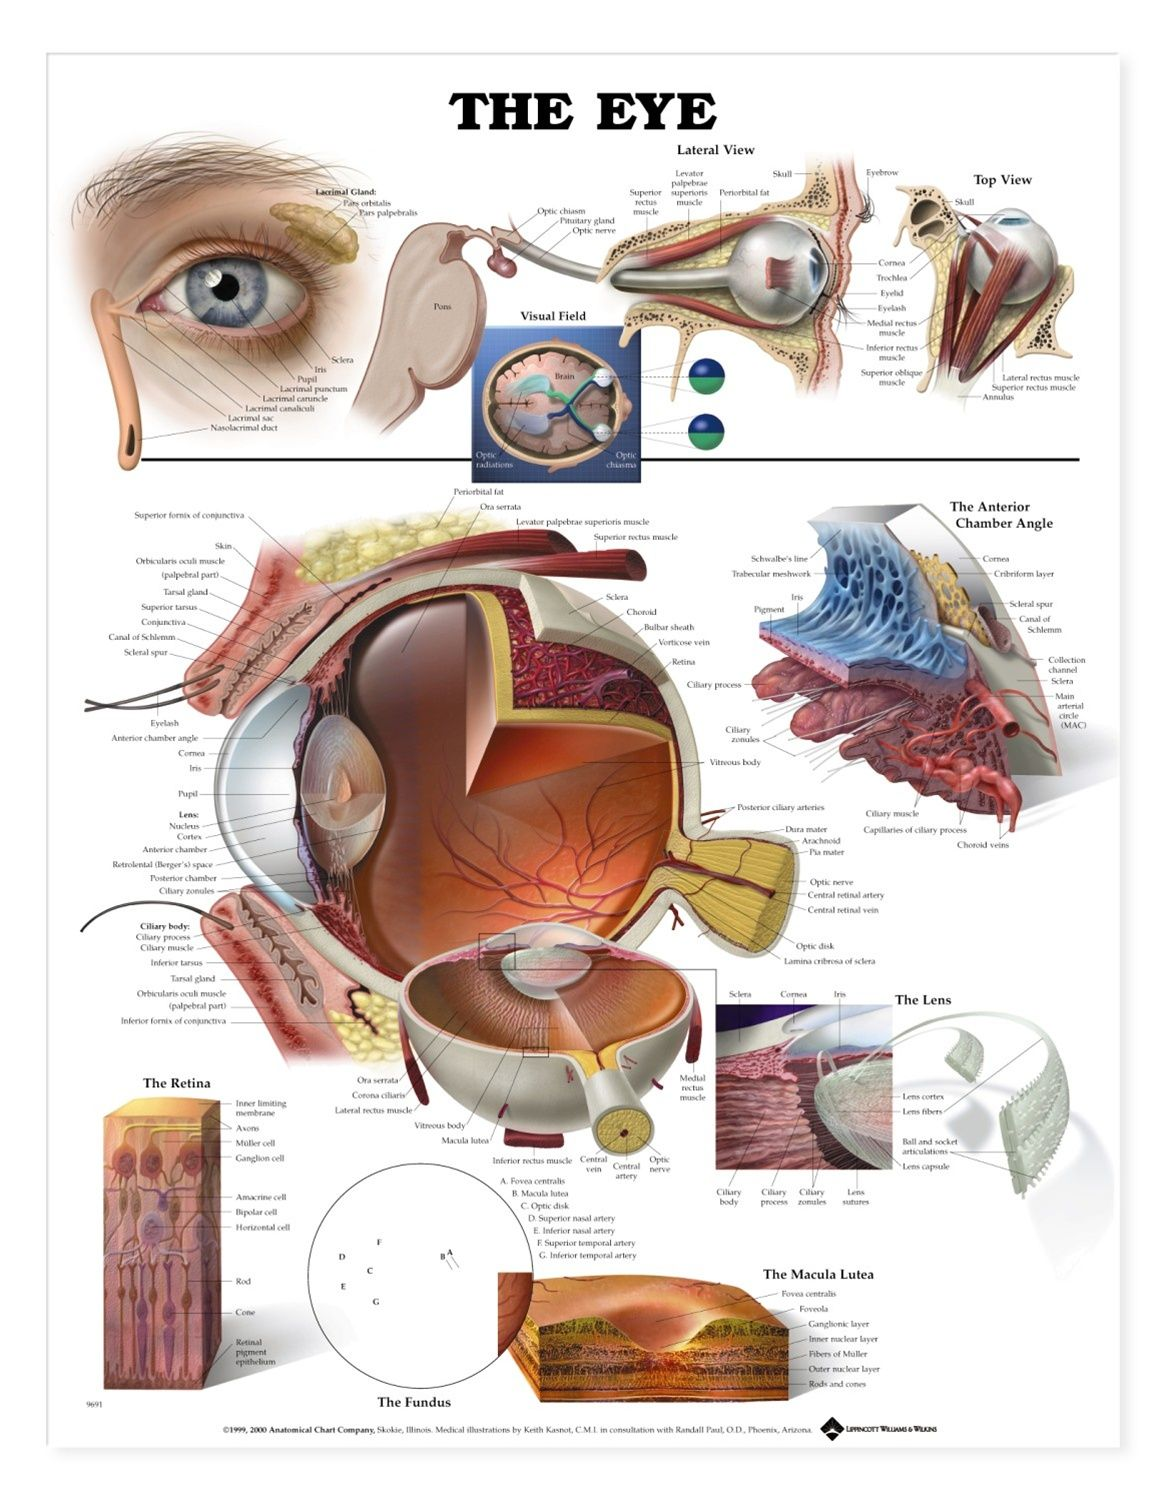 This Popular Chart Of The Eye Has Illustrations By Award